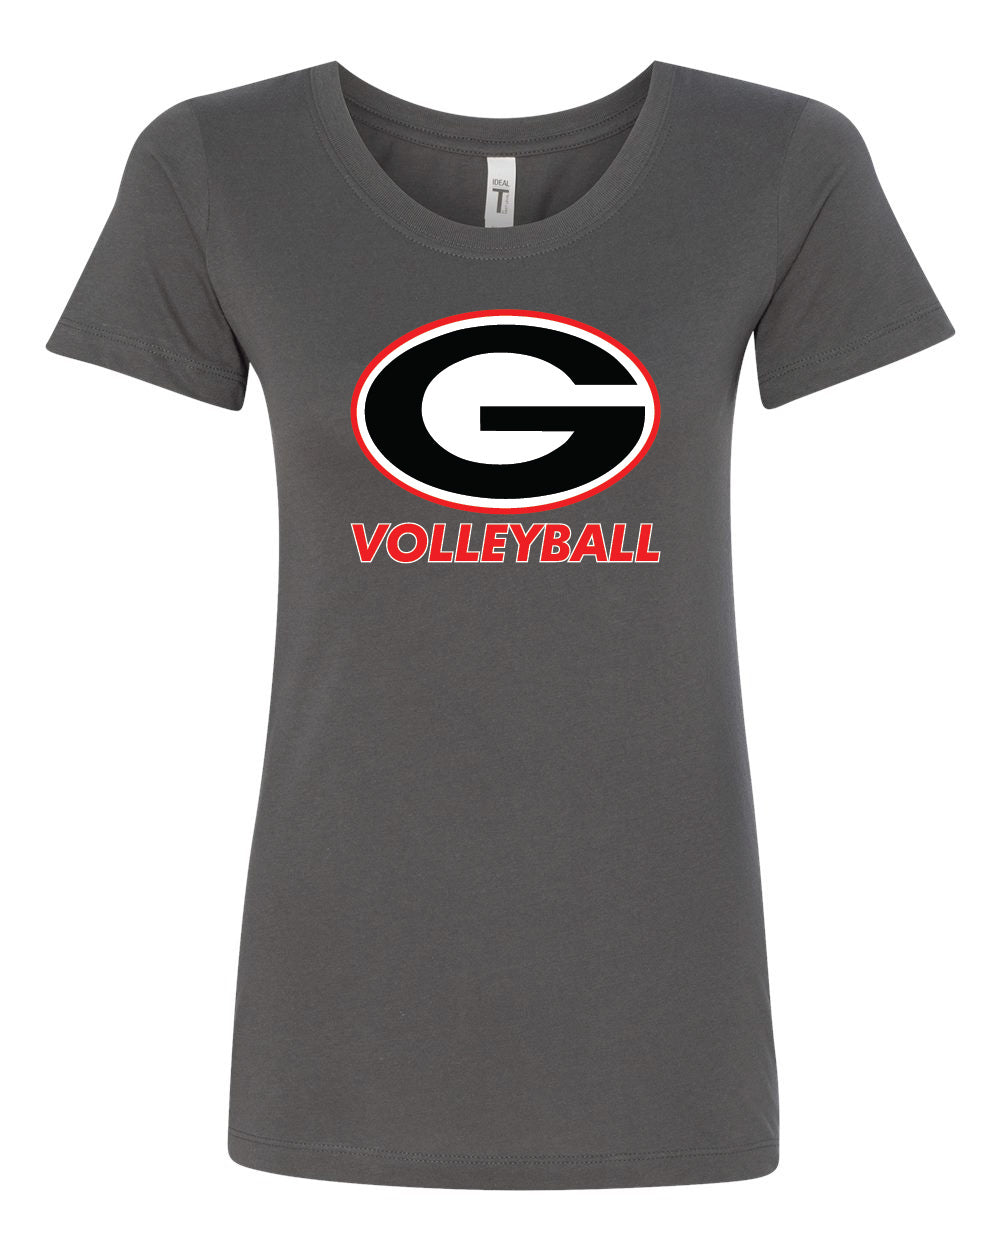 Ladies Short Sleeve Volleyball T-Shirt